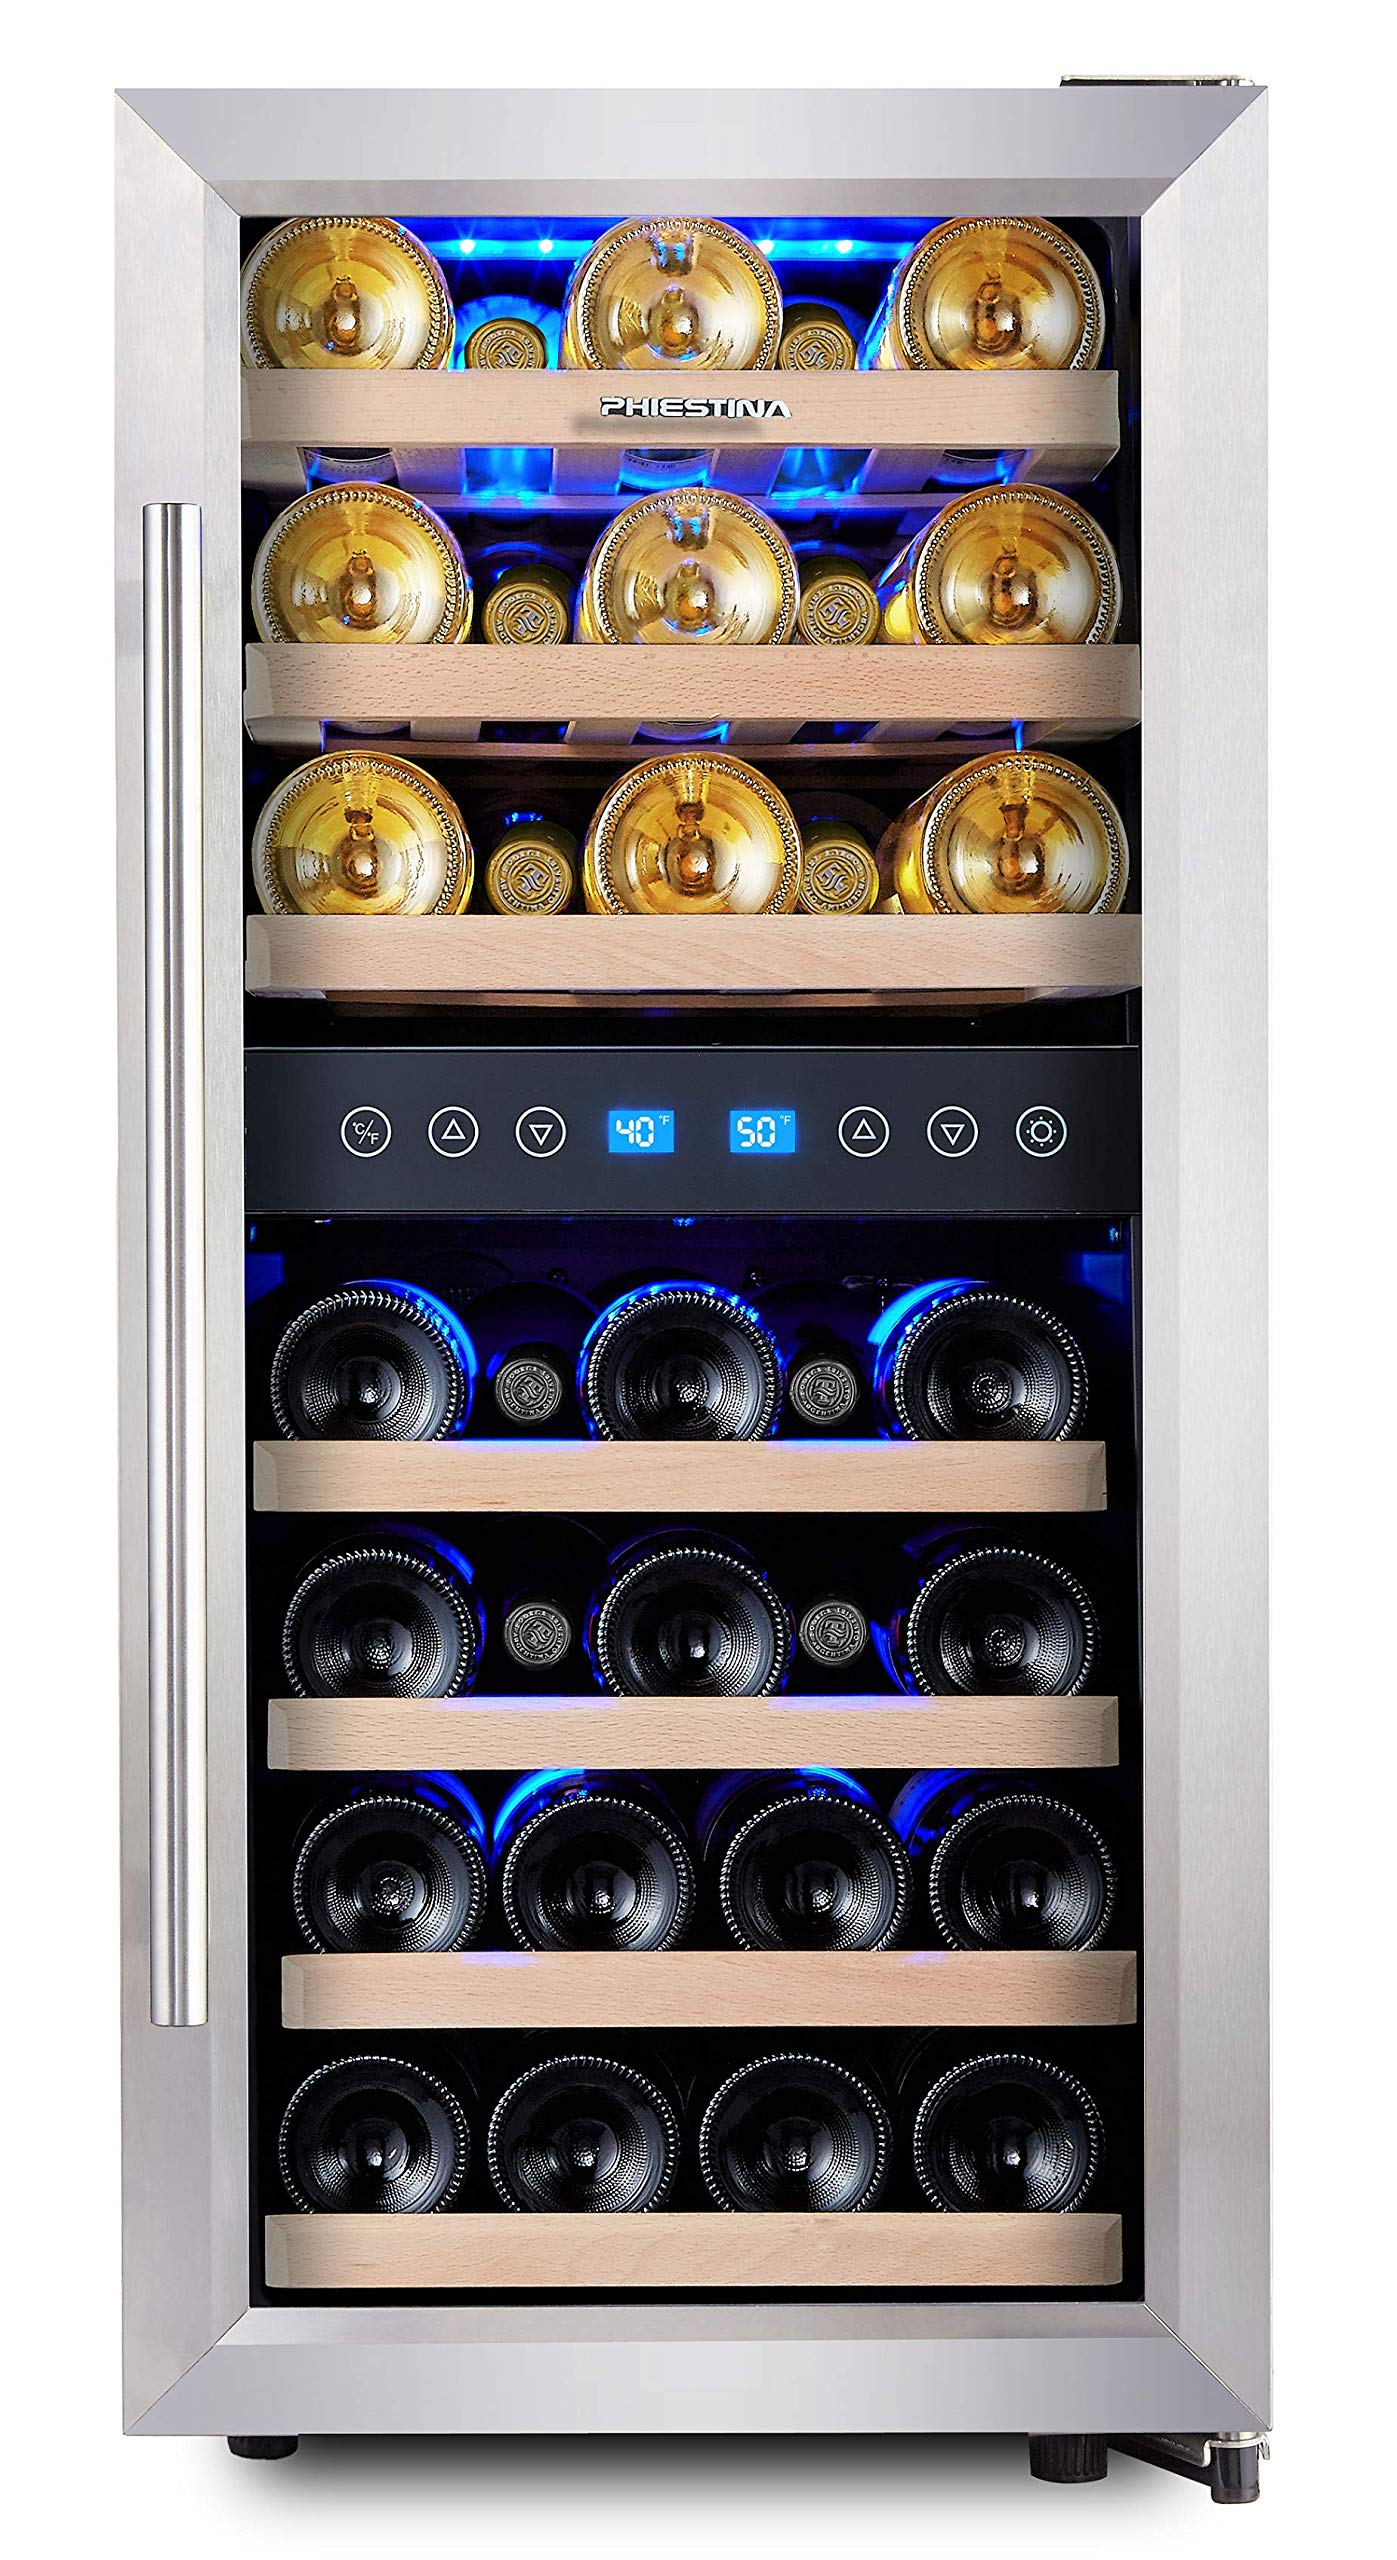 Phiestina Dual Zone Wine Cooler Refrigerator - 33 Bottle Free Standing Compressor Fridge and Chiller for Red and White Wines - 16'' Glass Door Wine Refrigerator with Digital Memory Temperature Control by Phiestina